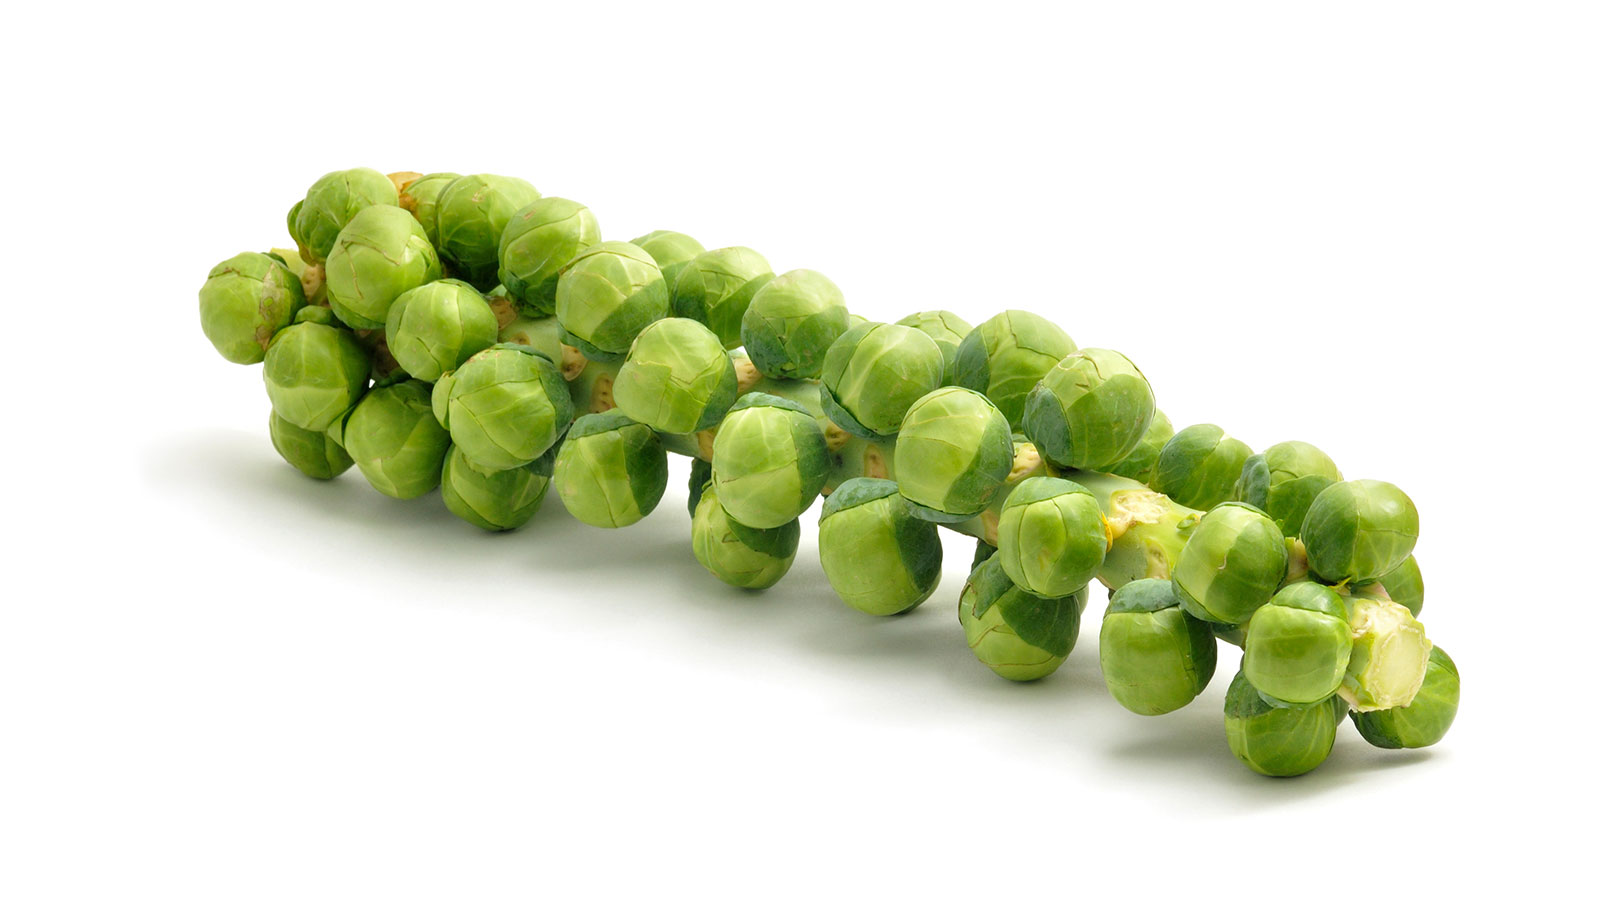 Brussel-Sprout-Stalk